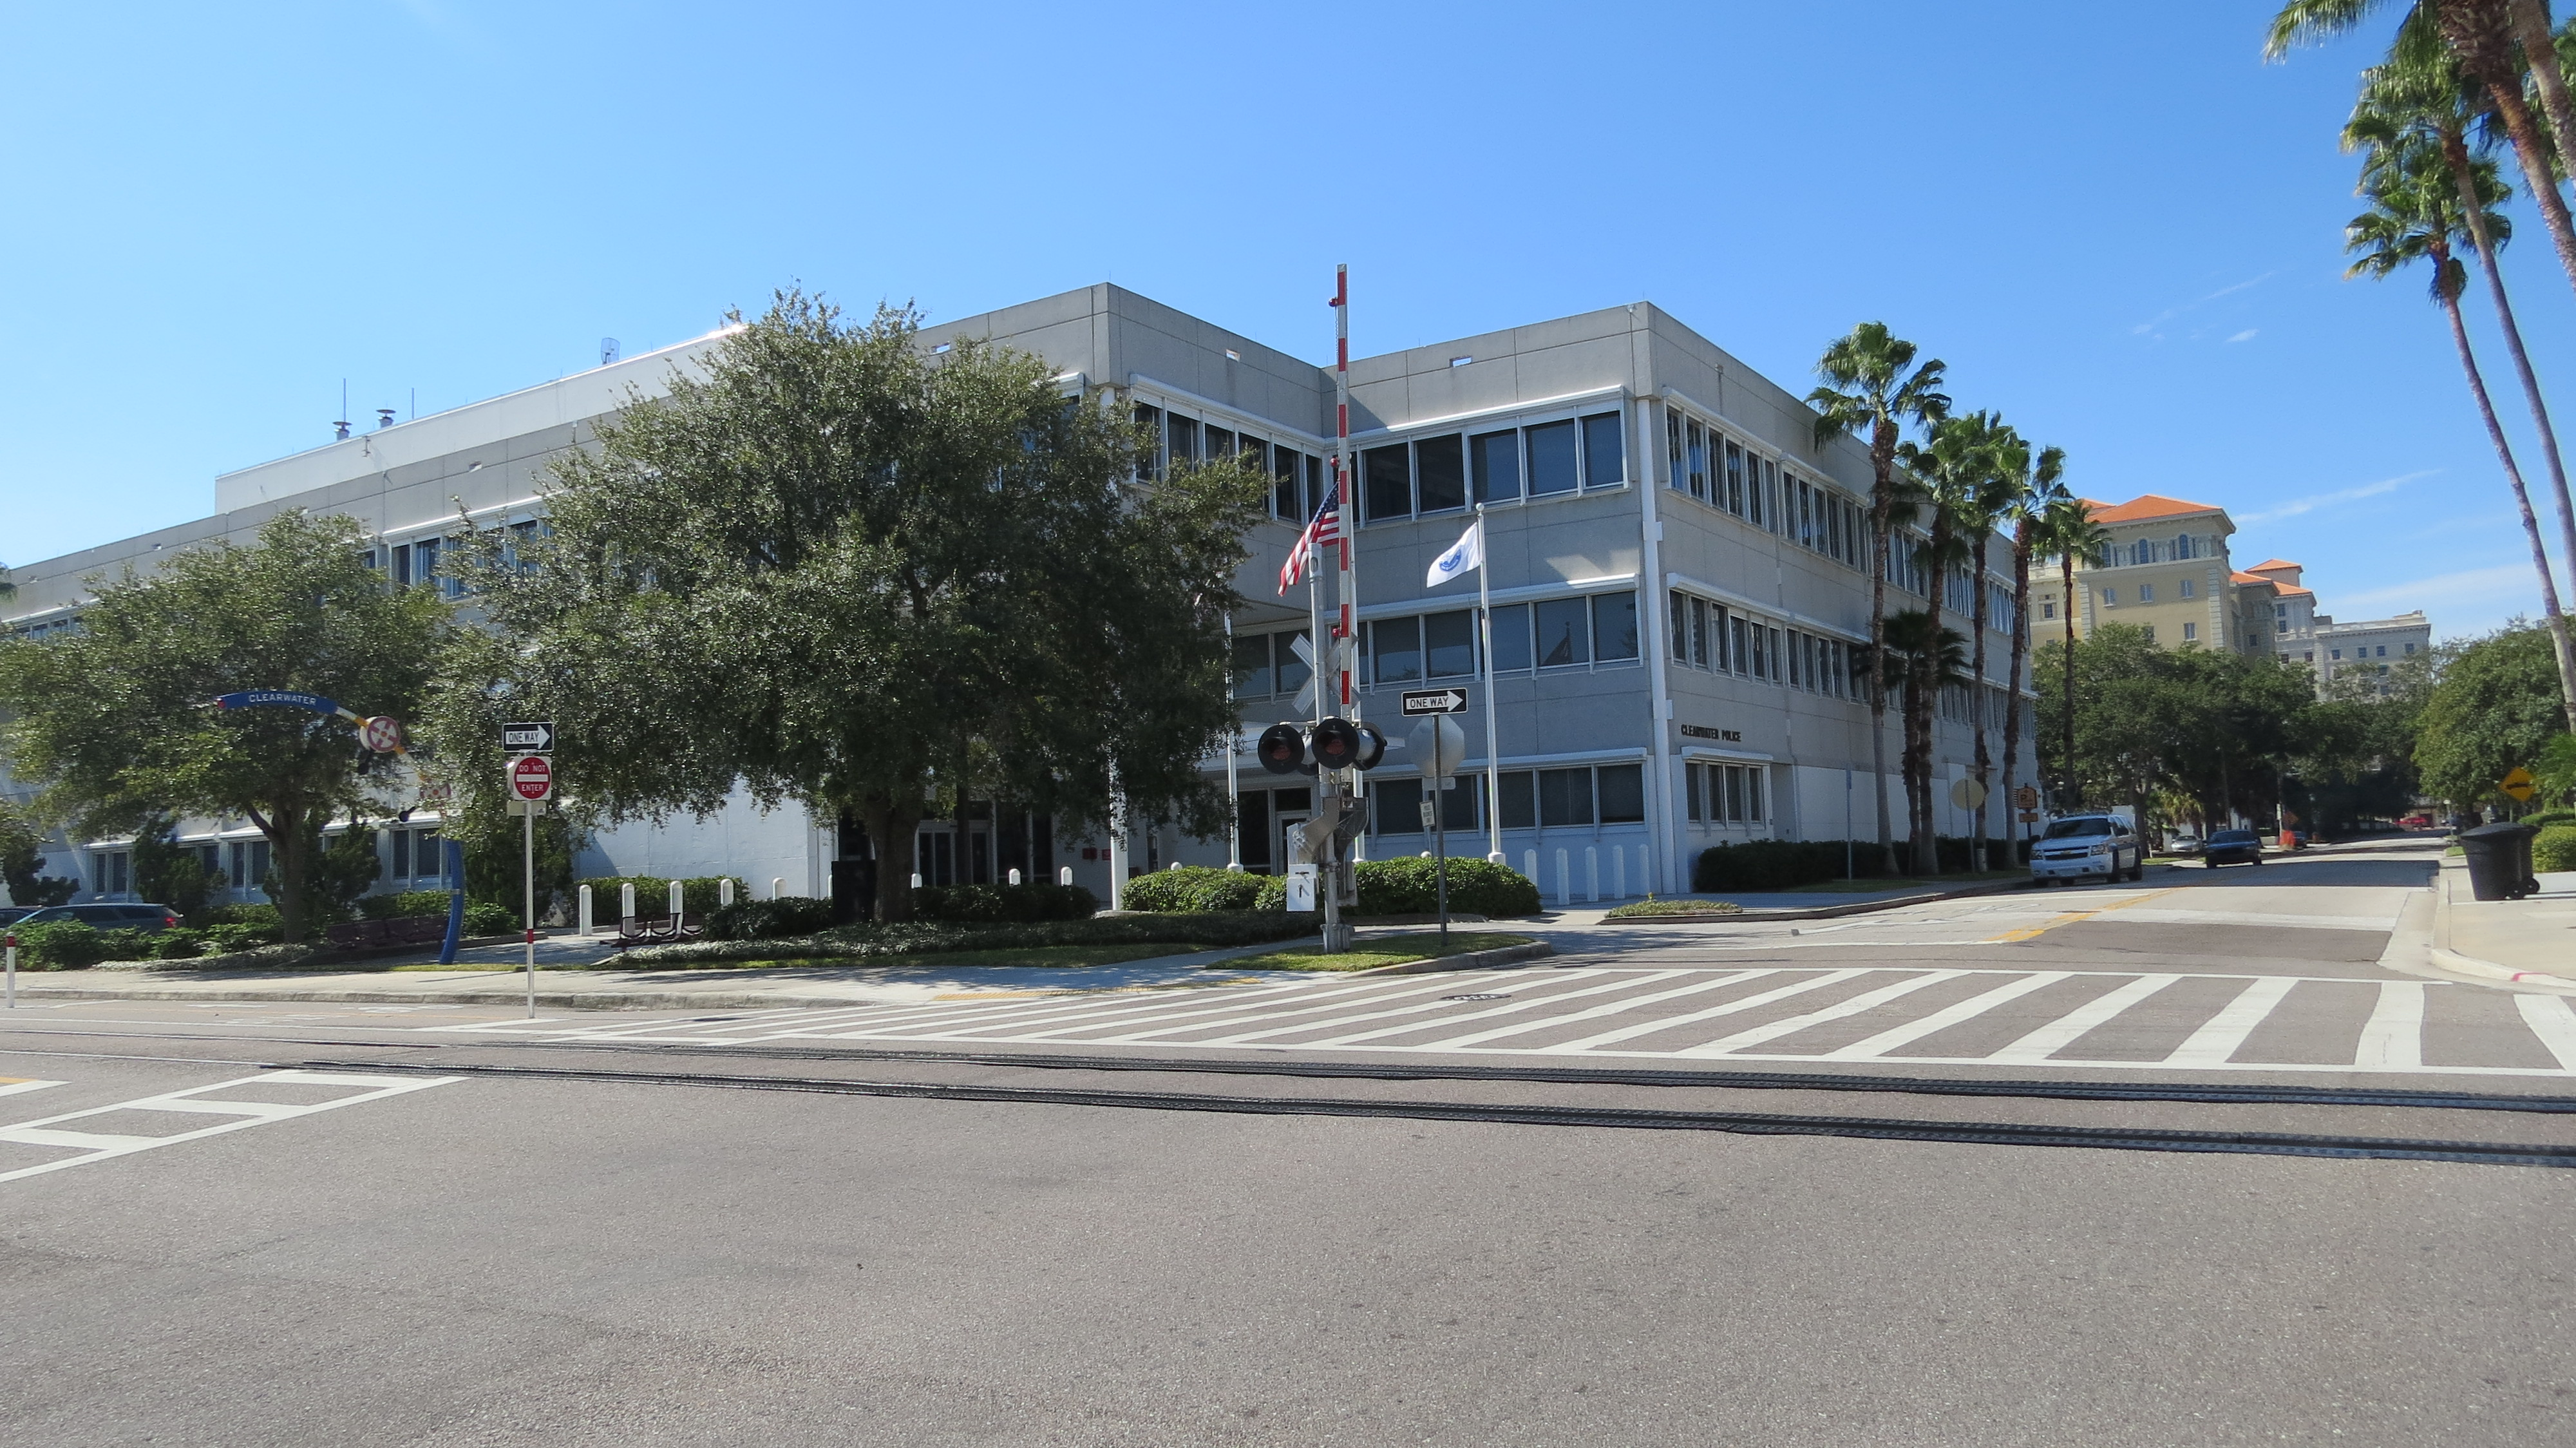 Clearwater Police Department, City of Clearwater, Florida